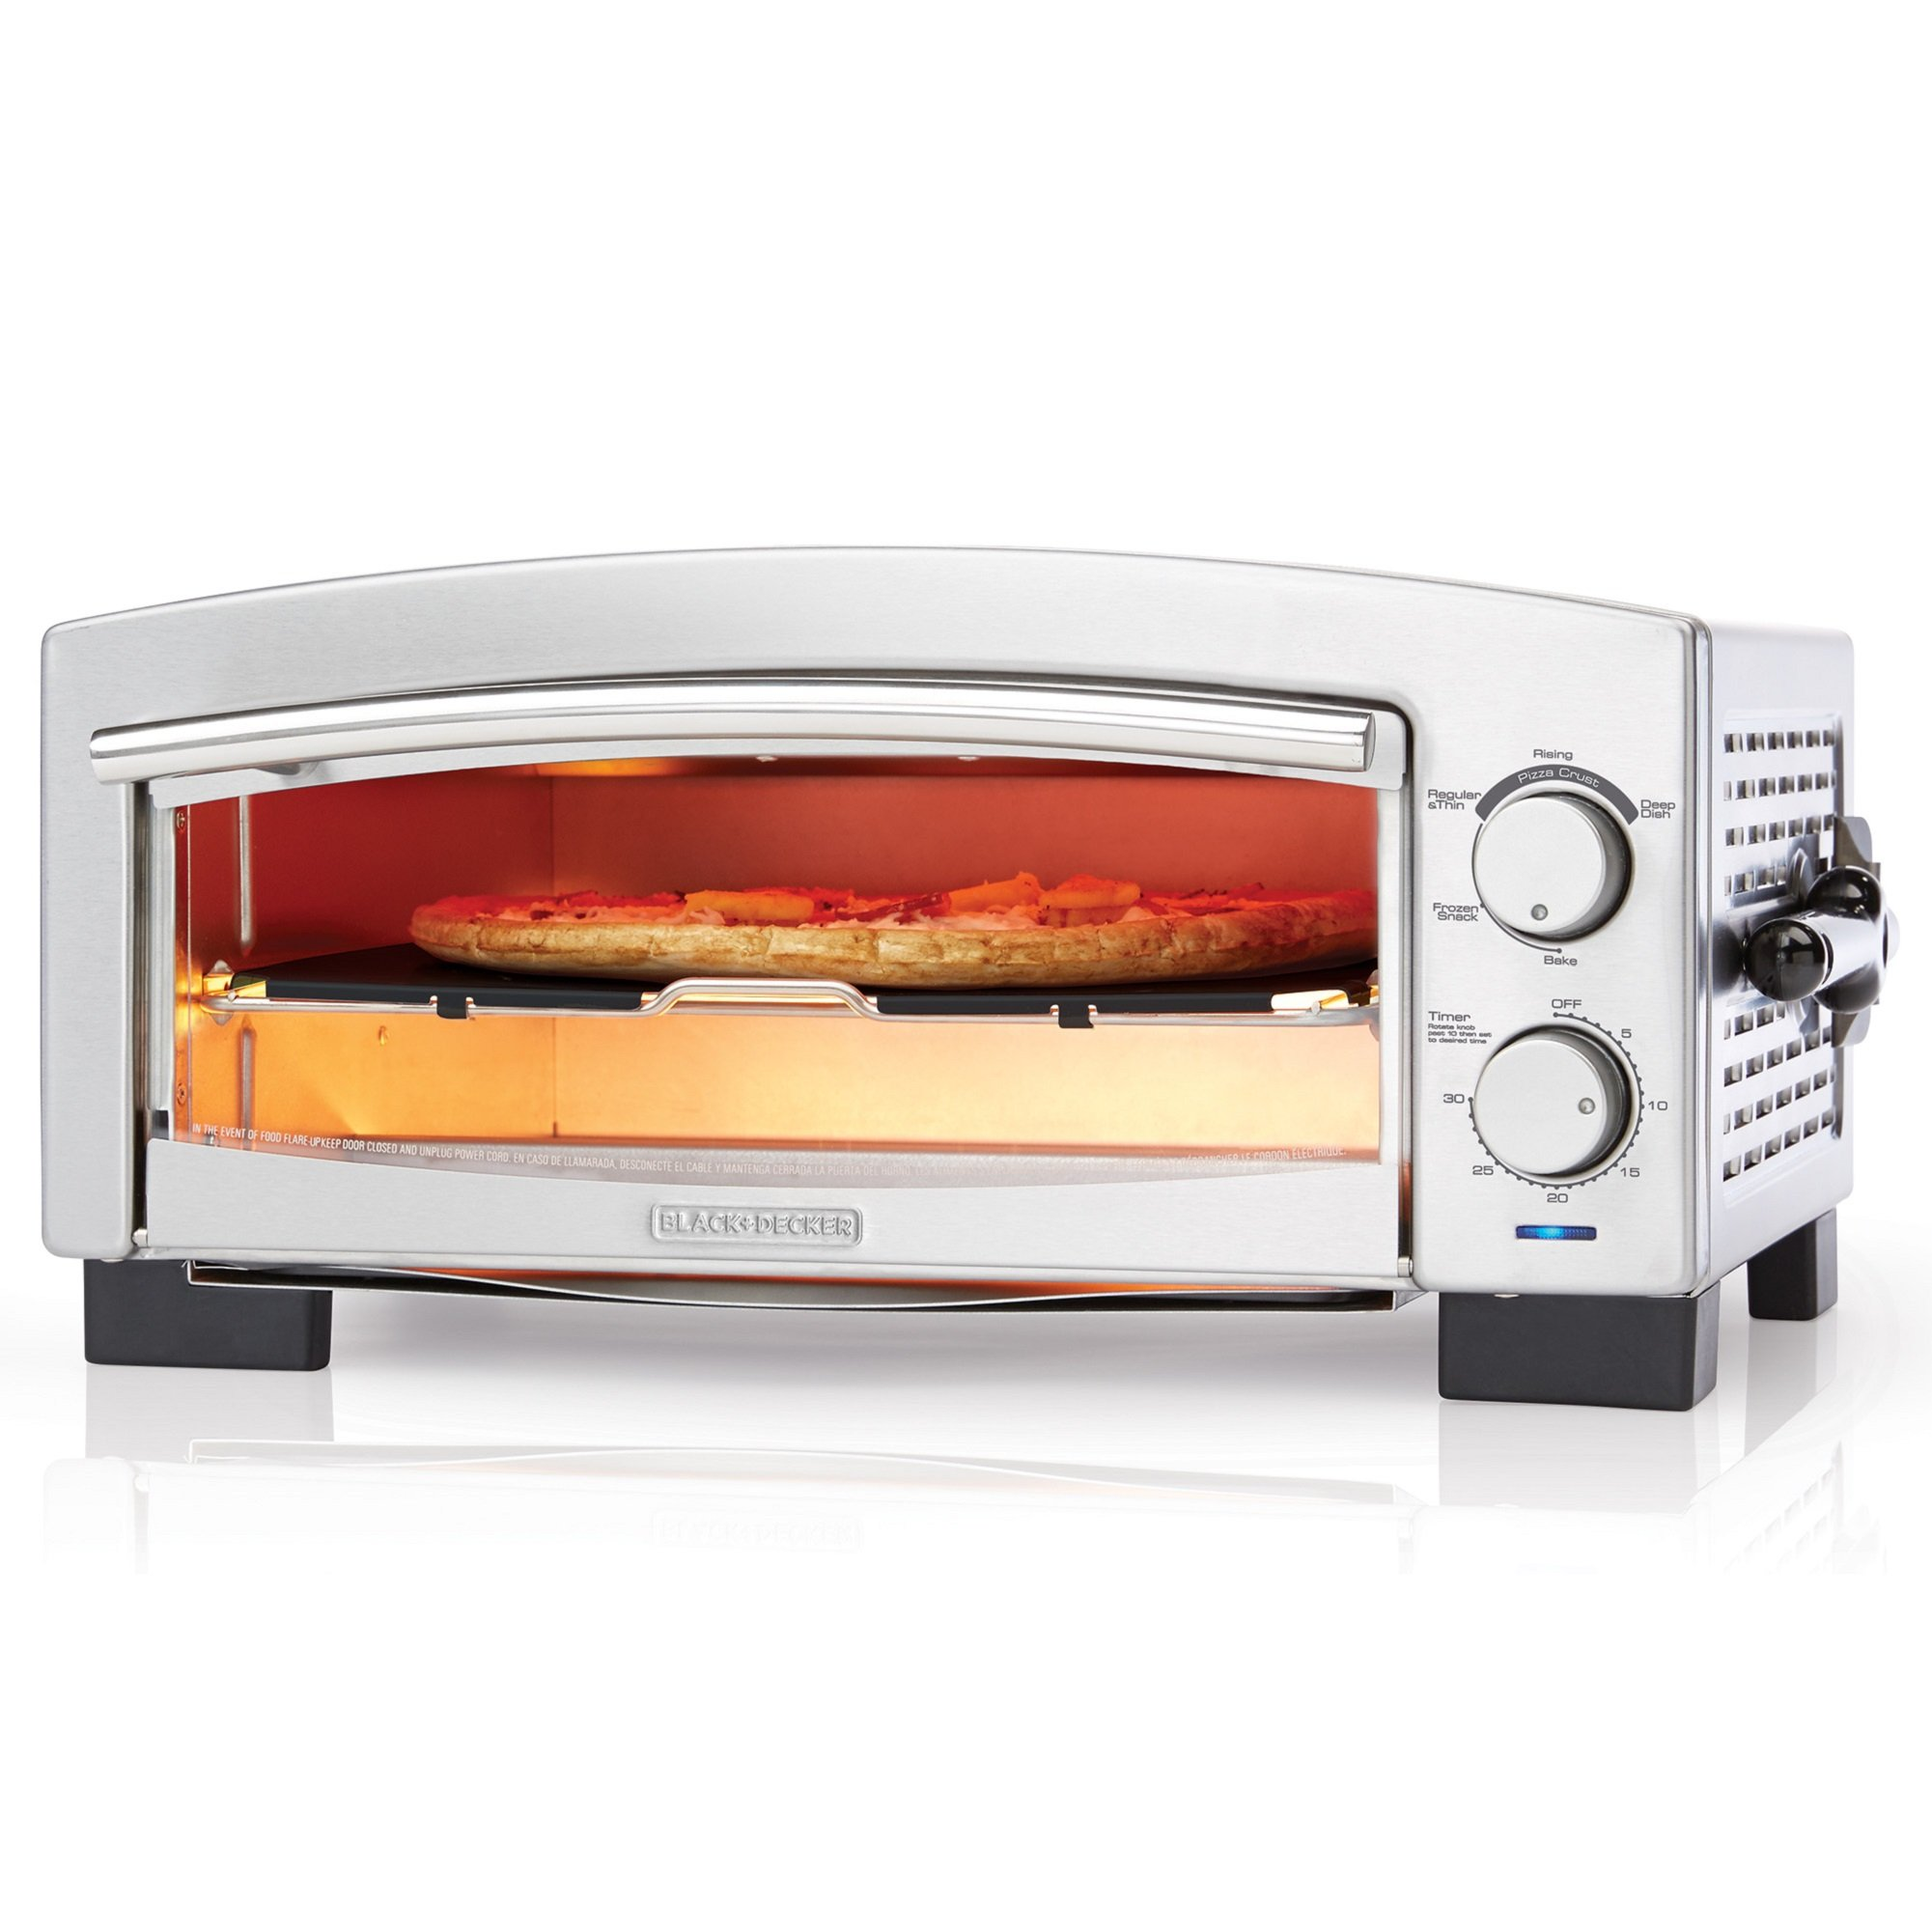 BLACK+DECKER P300S 5-Minute Pizza Oven & Snack Maker, Pizza Oven, Toaster Oven, Stainless Steel